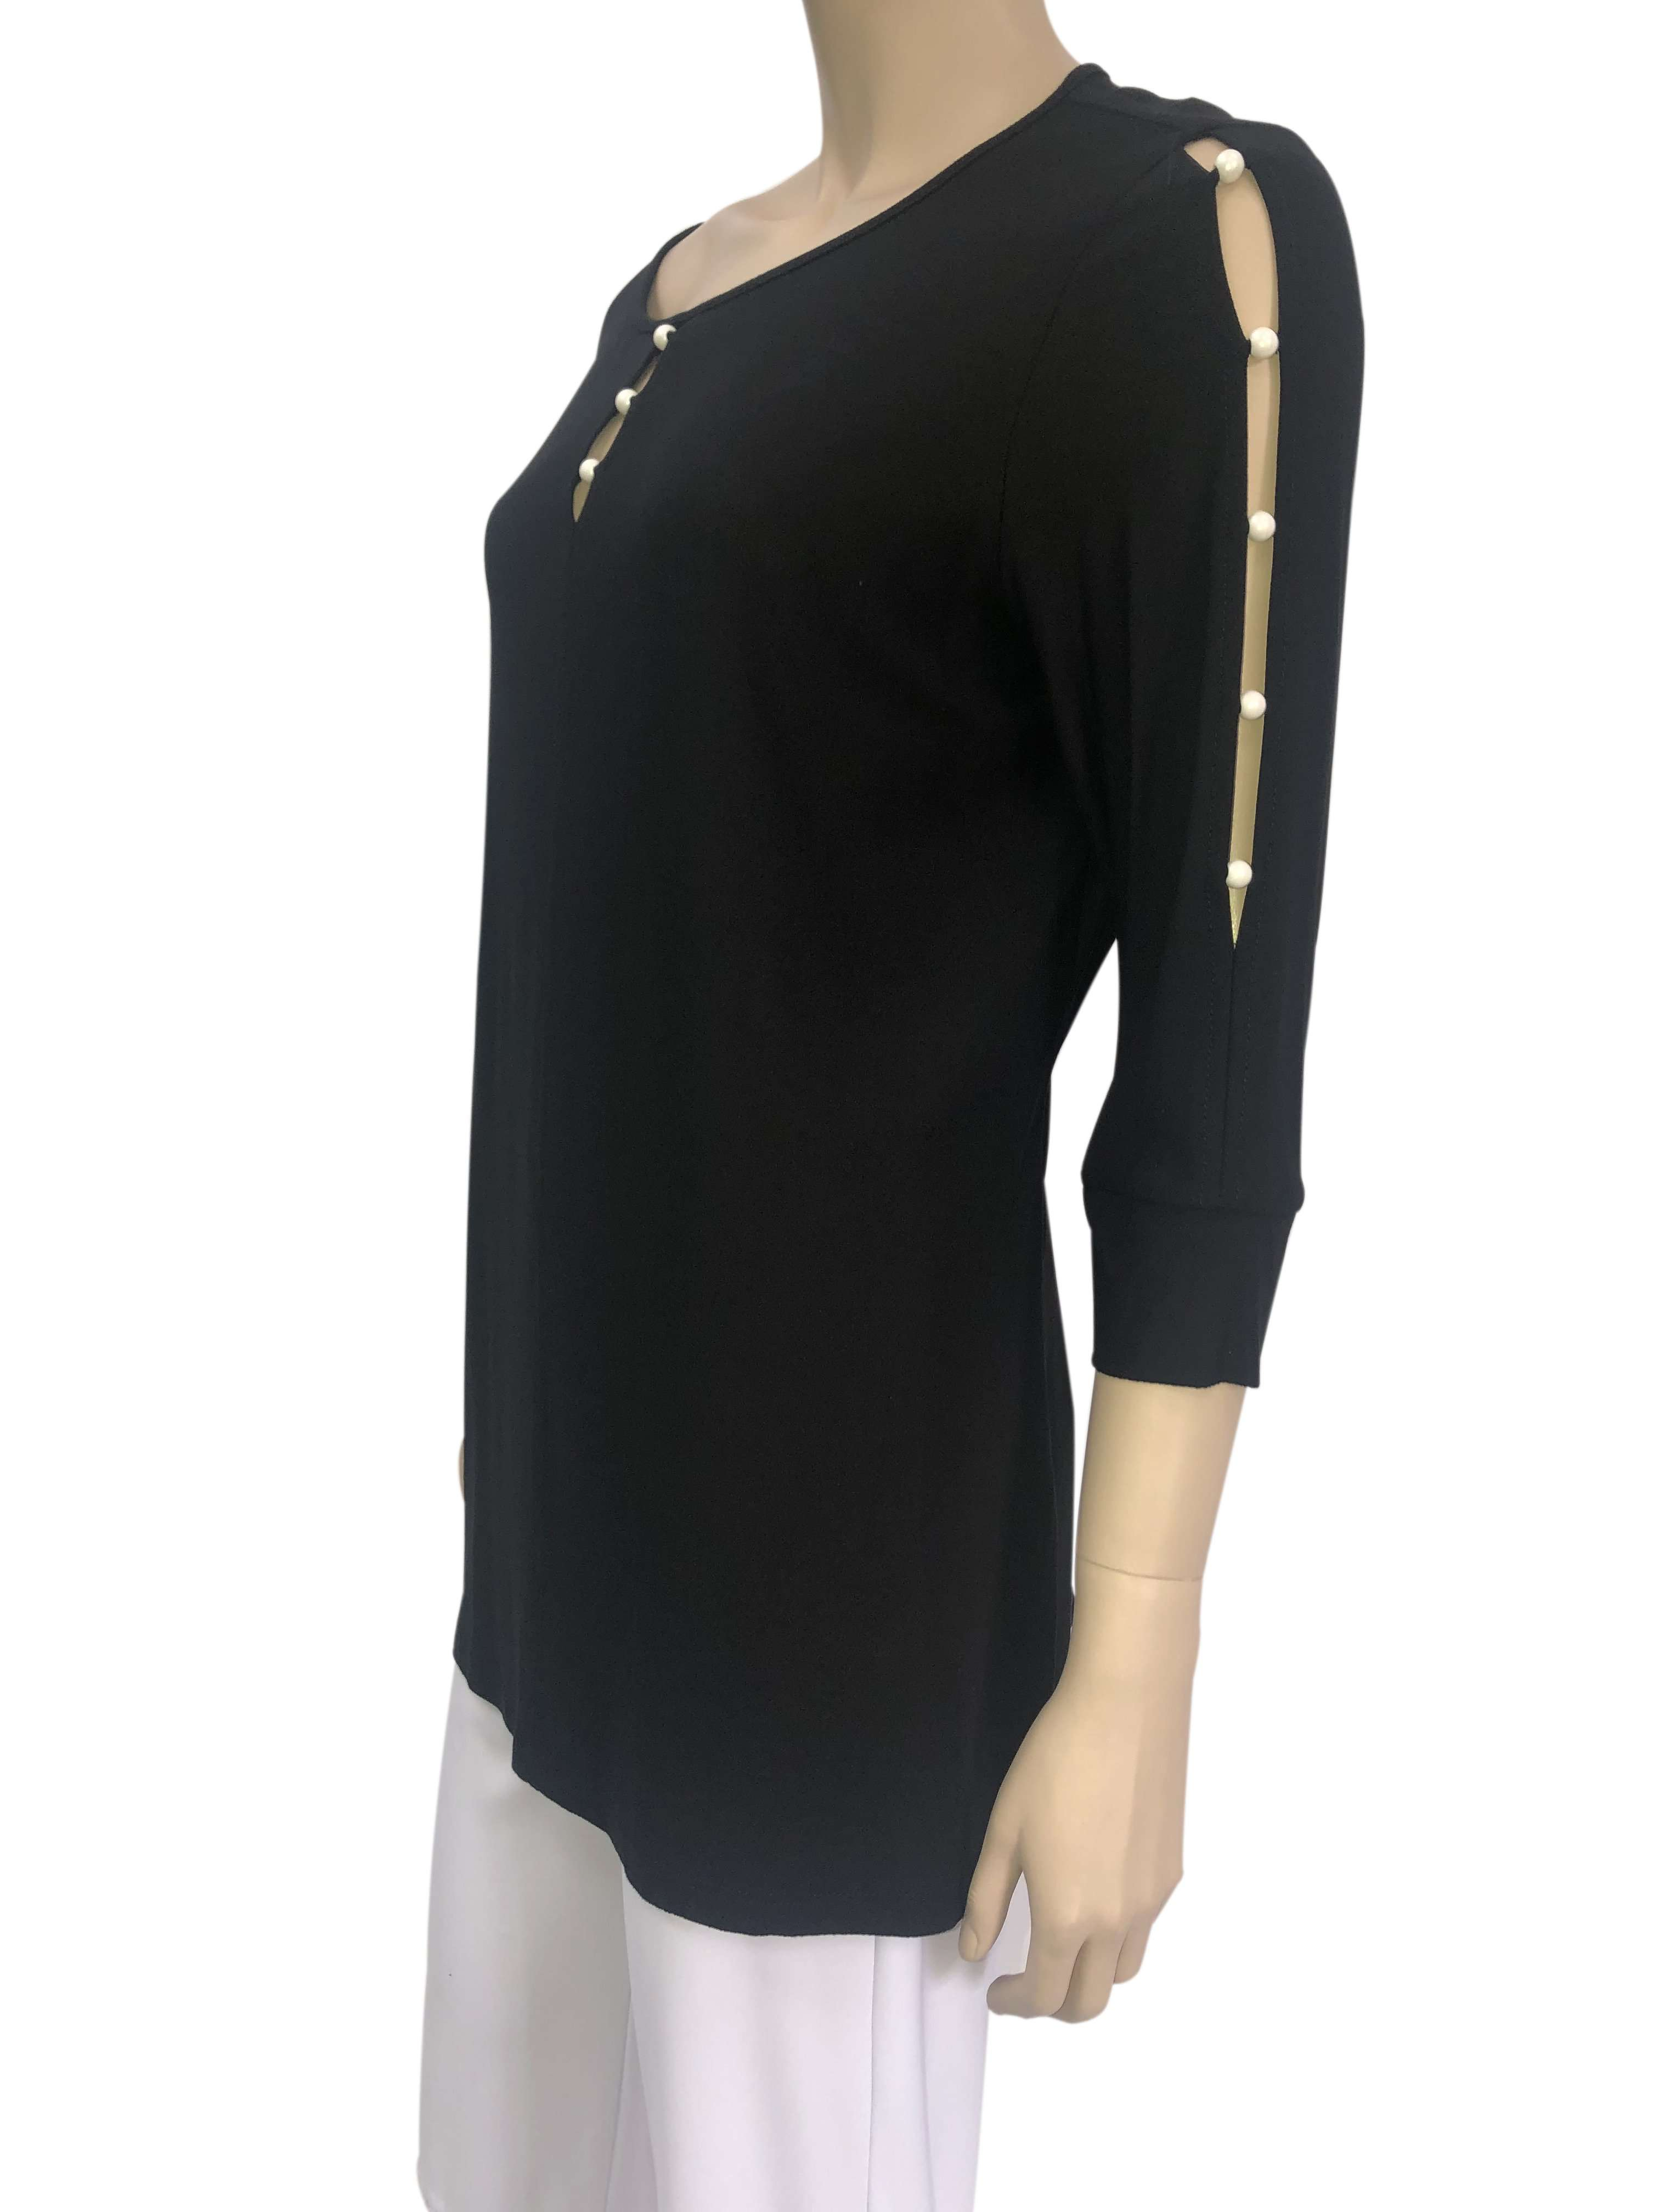 Women's Black Top with Pearls and Sleeve Detail - Made in Canada - XLarge Sizes - Yvonne Marie - Yvonne Marie